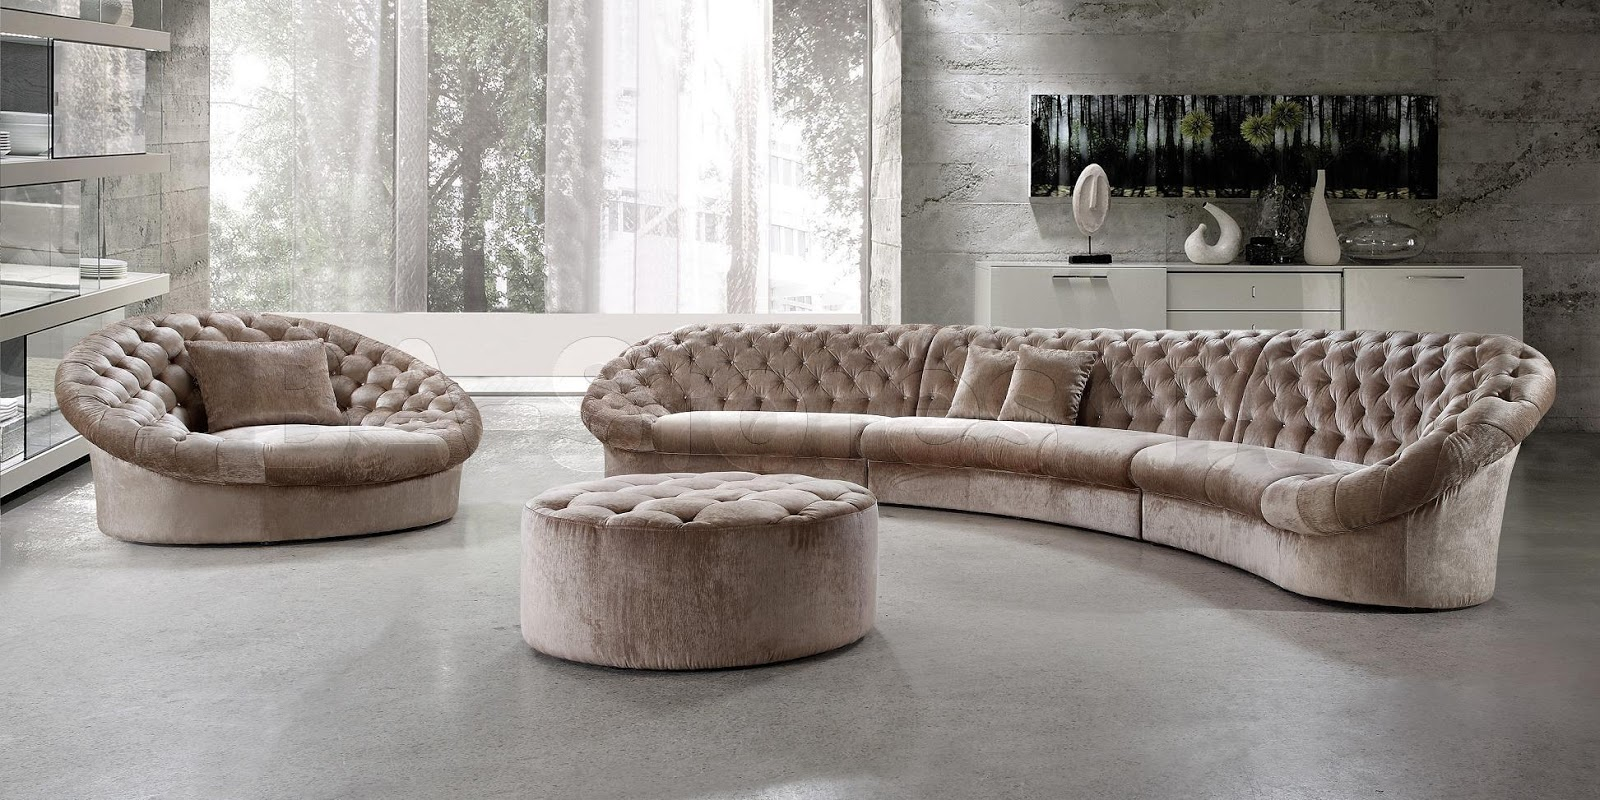 Modern Furniture Sofa Beautiful Designs